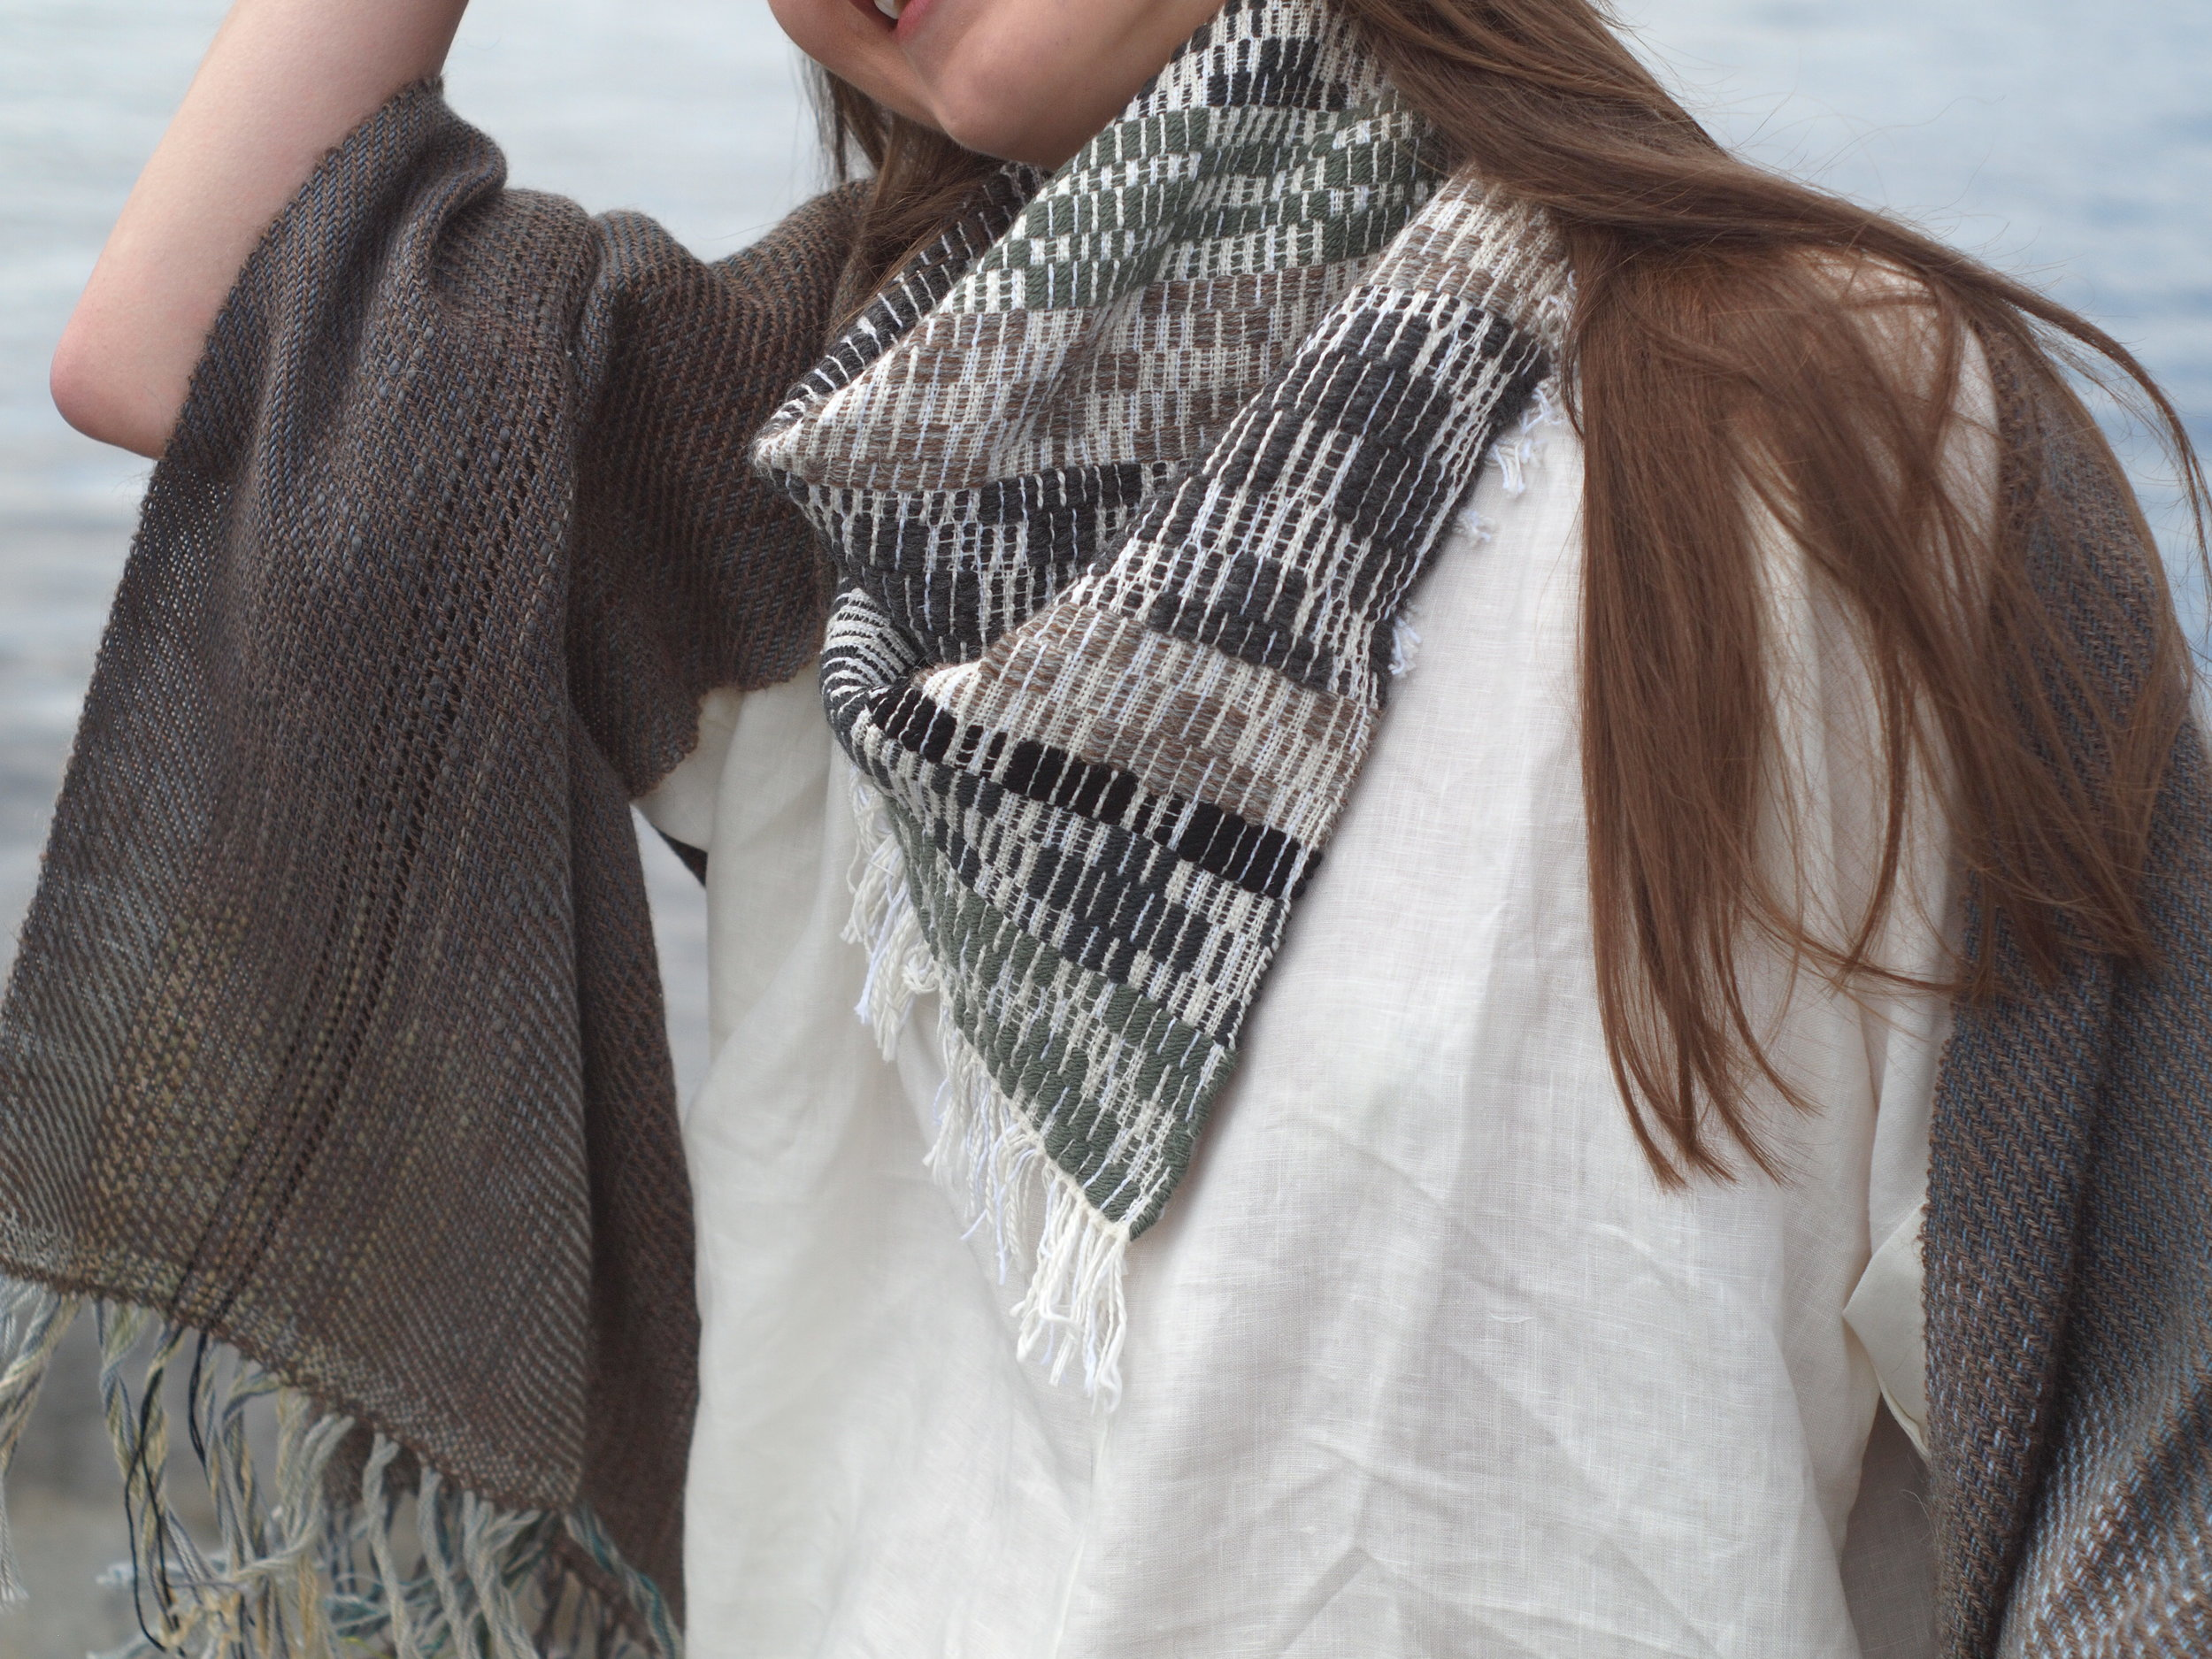 Handwoven scarves, 2015 - wool, baby alpaca and hand-dyed cotton